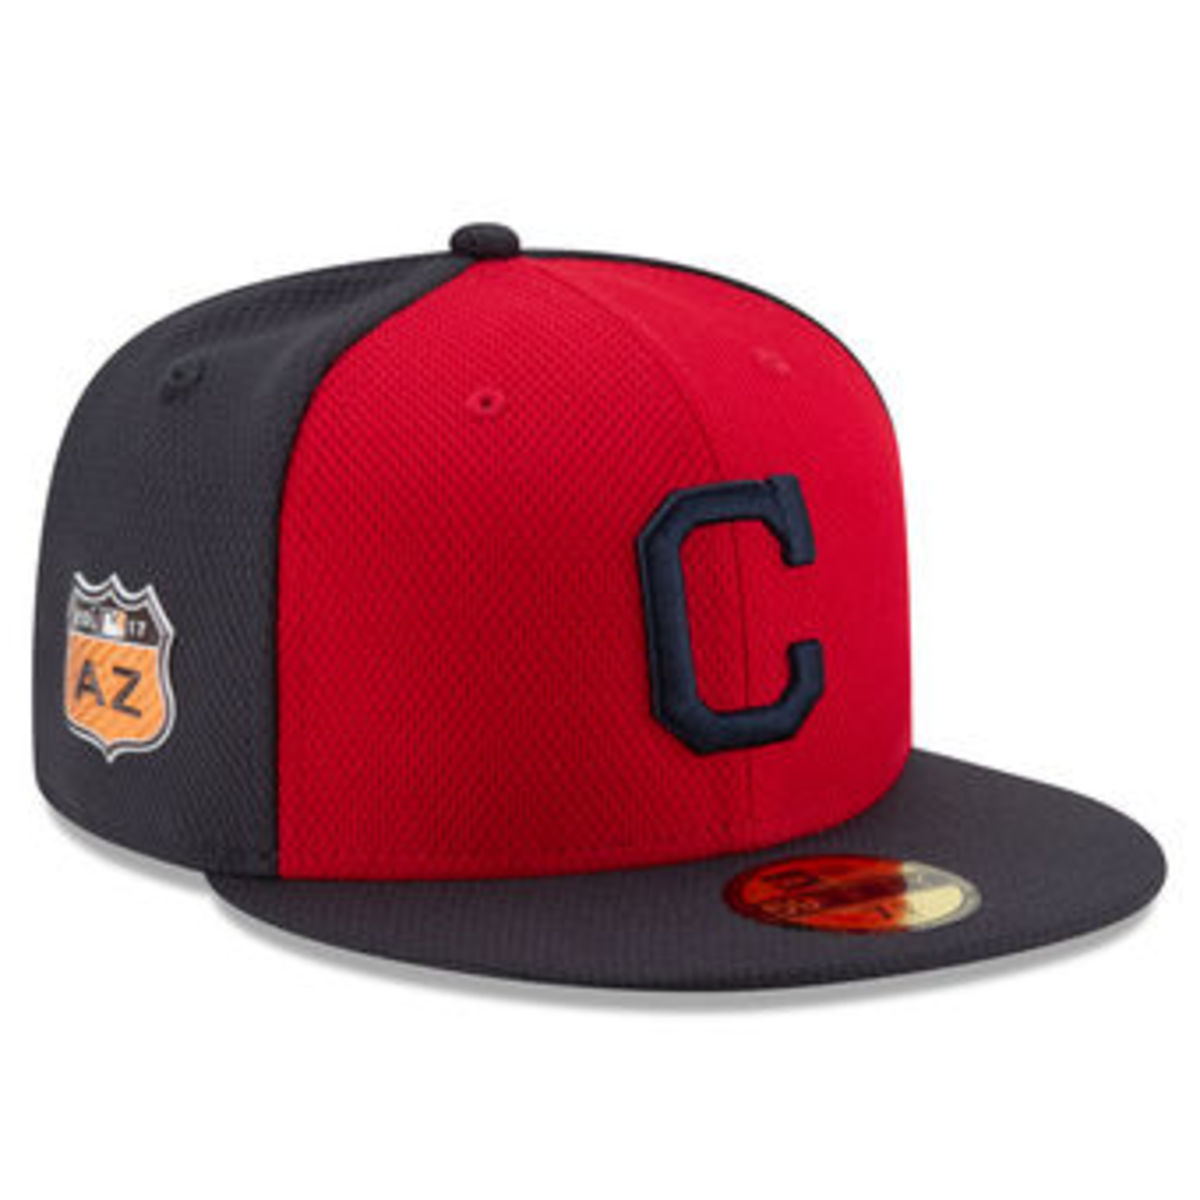 indians-spring-training-hat.jpg